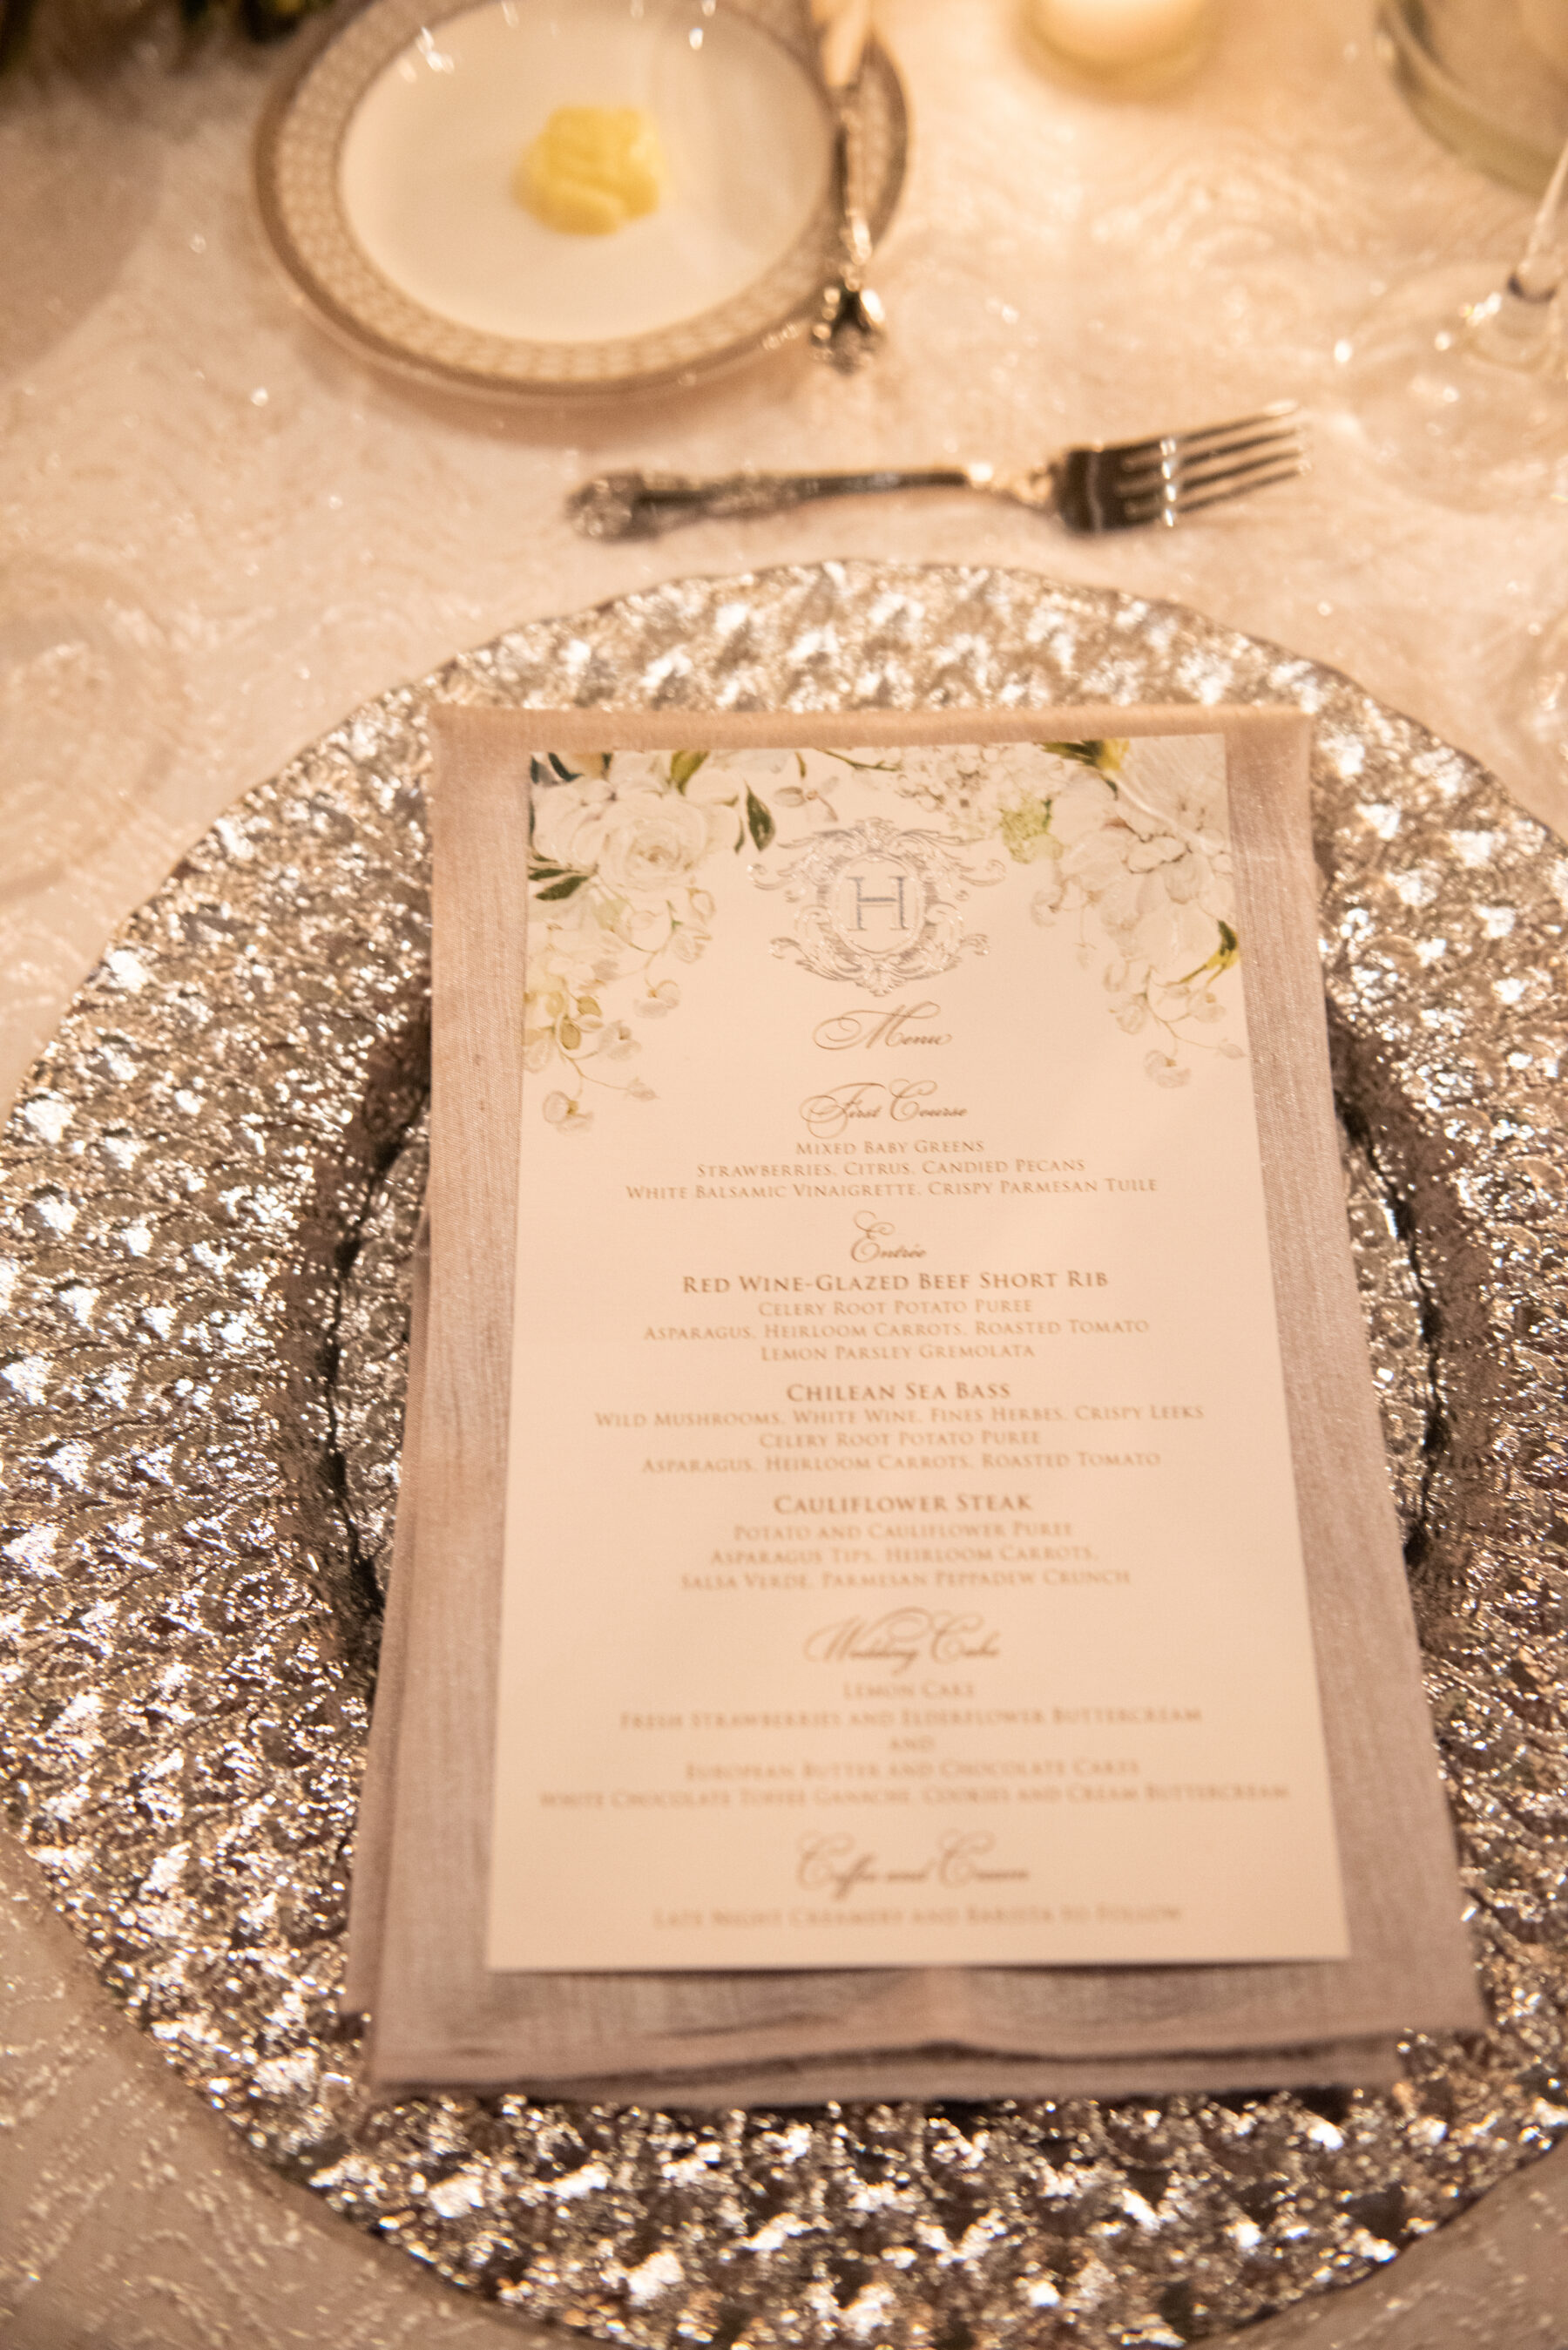 Silver wedding charger: Floral Filled Luxurious Wedding by LMA Designs featured on Nashville Bride Guide